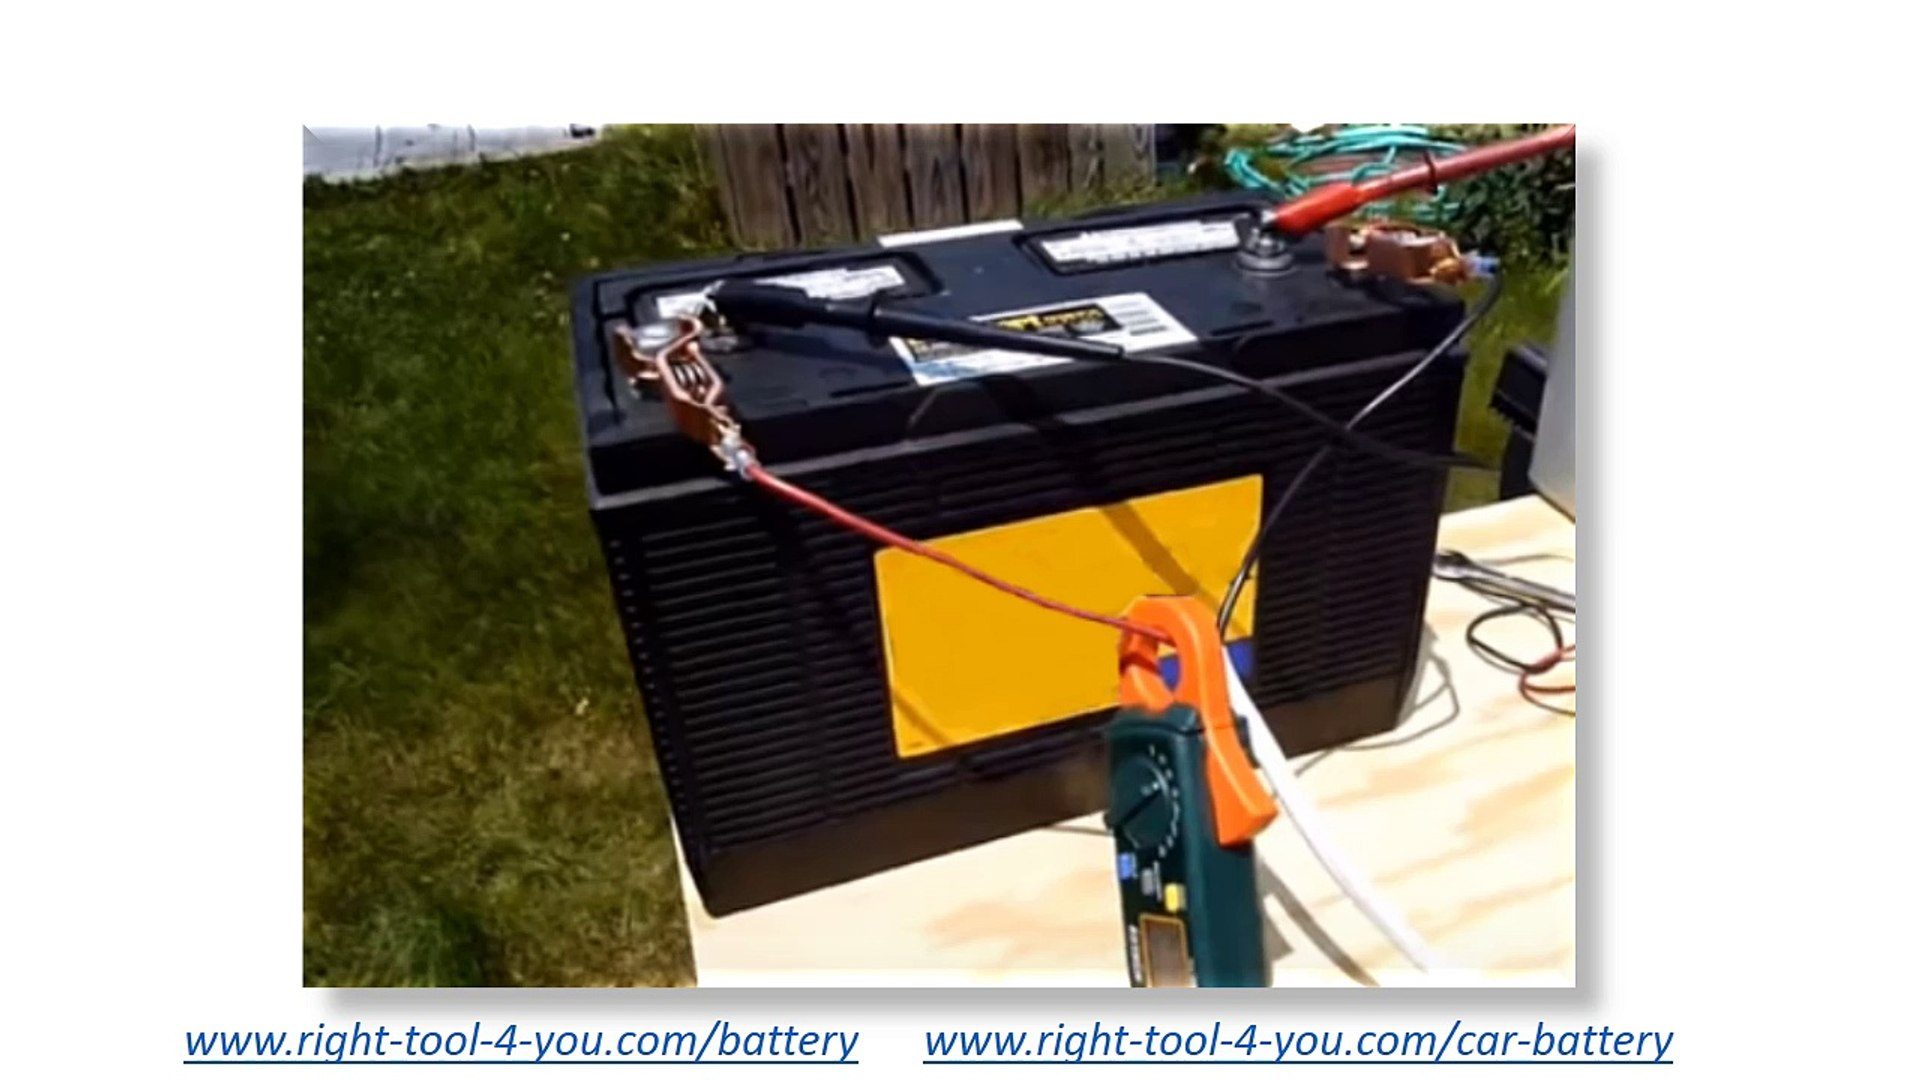 How to Revive a Dead Car Battery, Reconditioning Batteries DIY